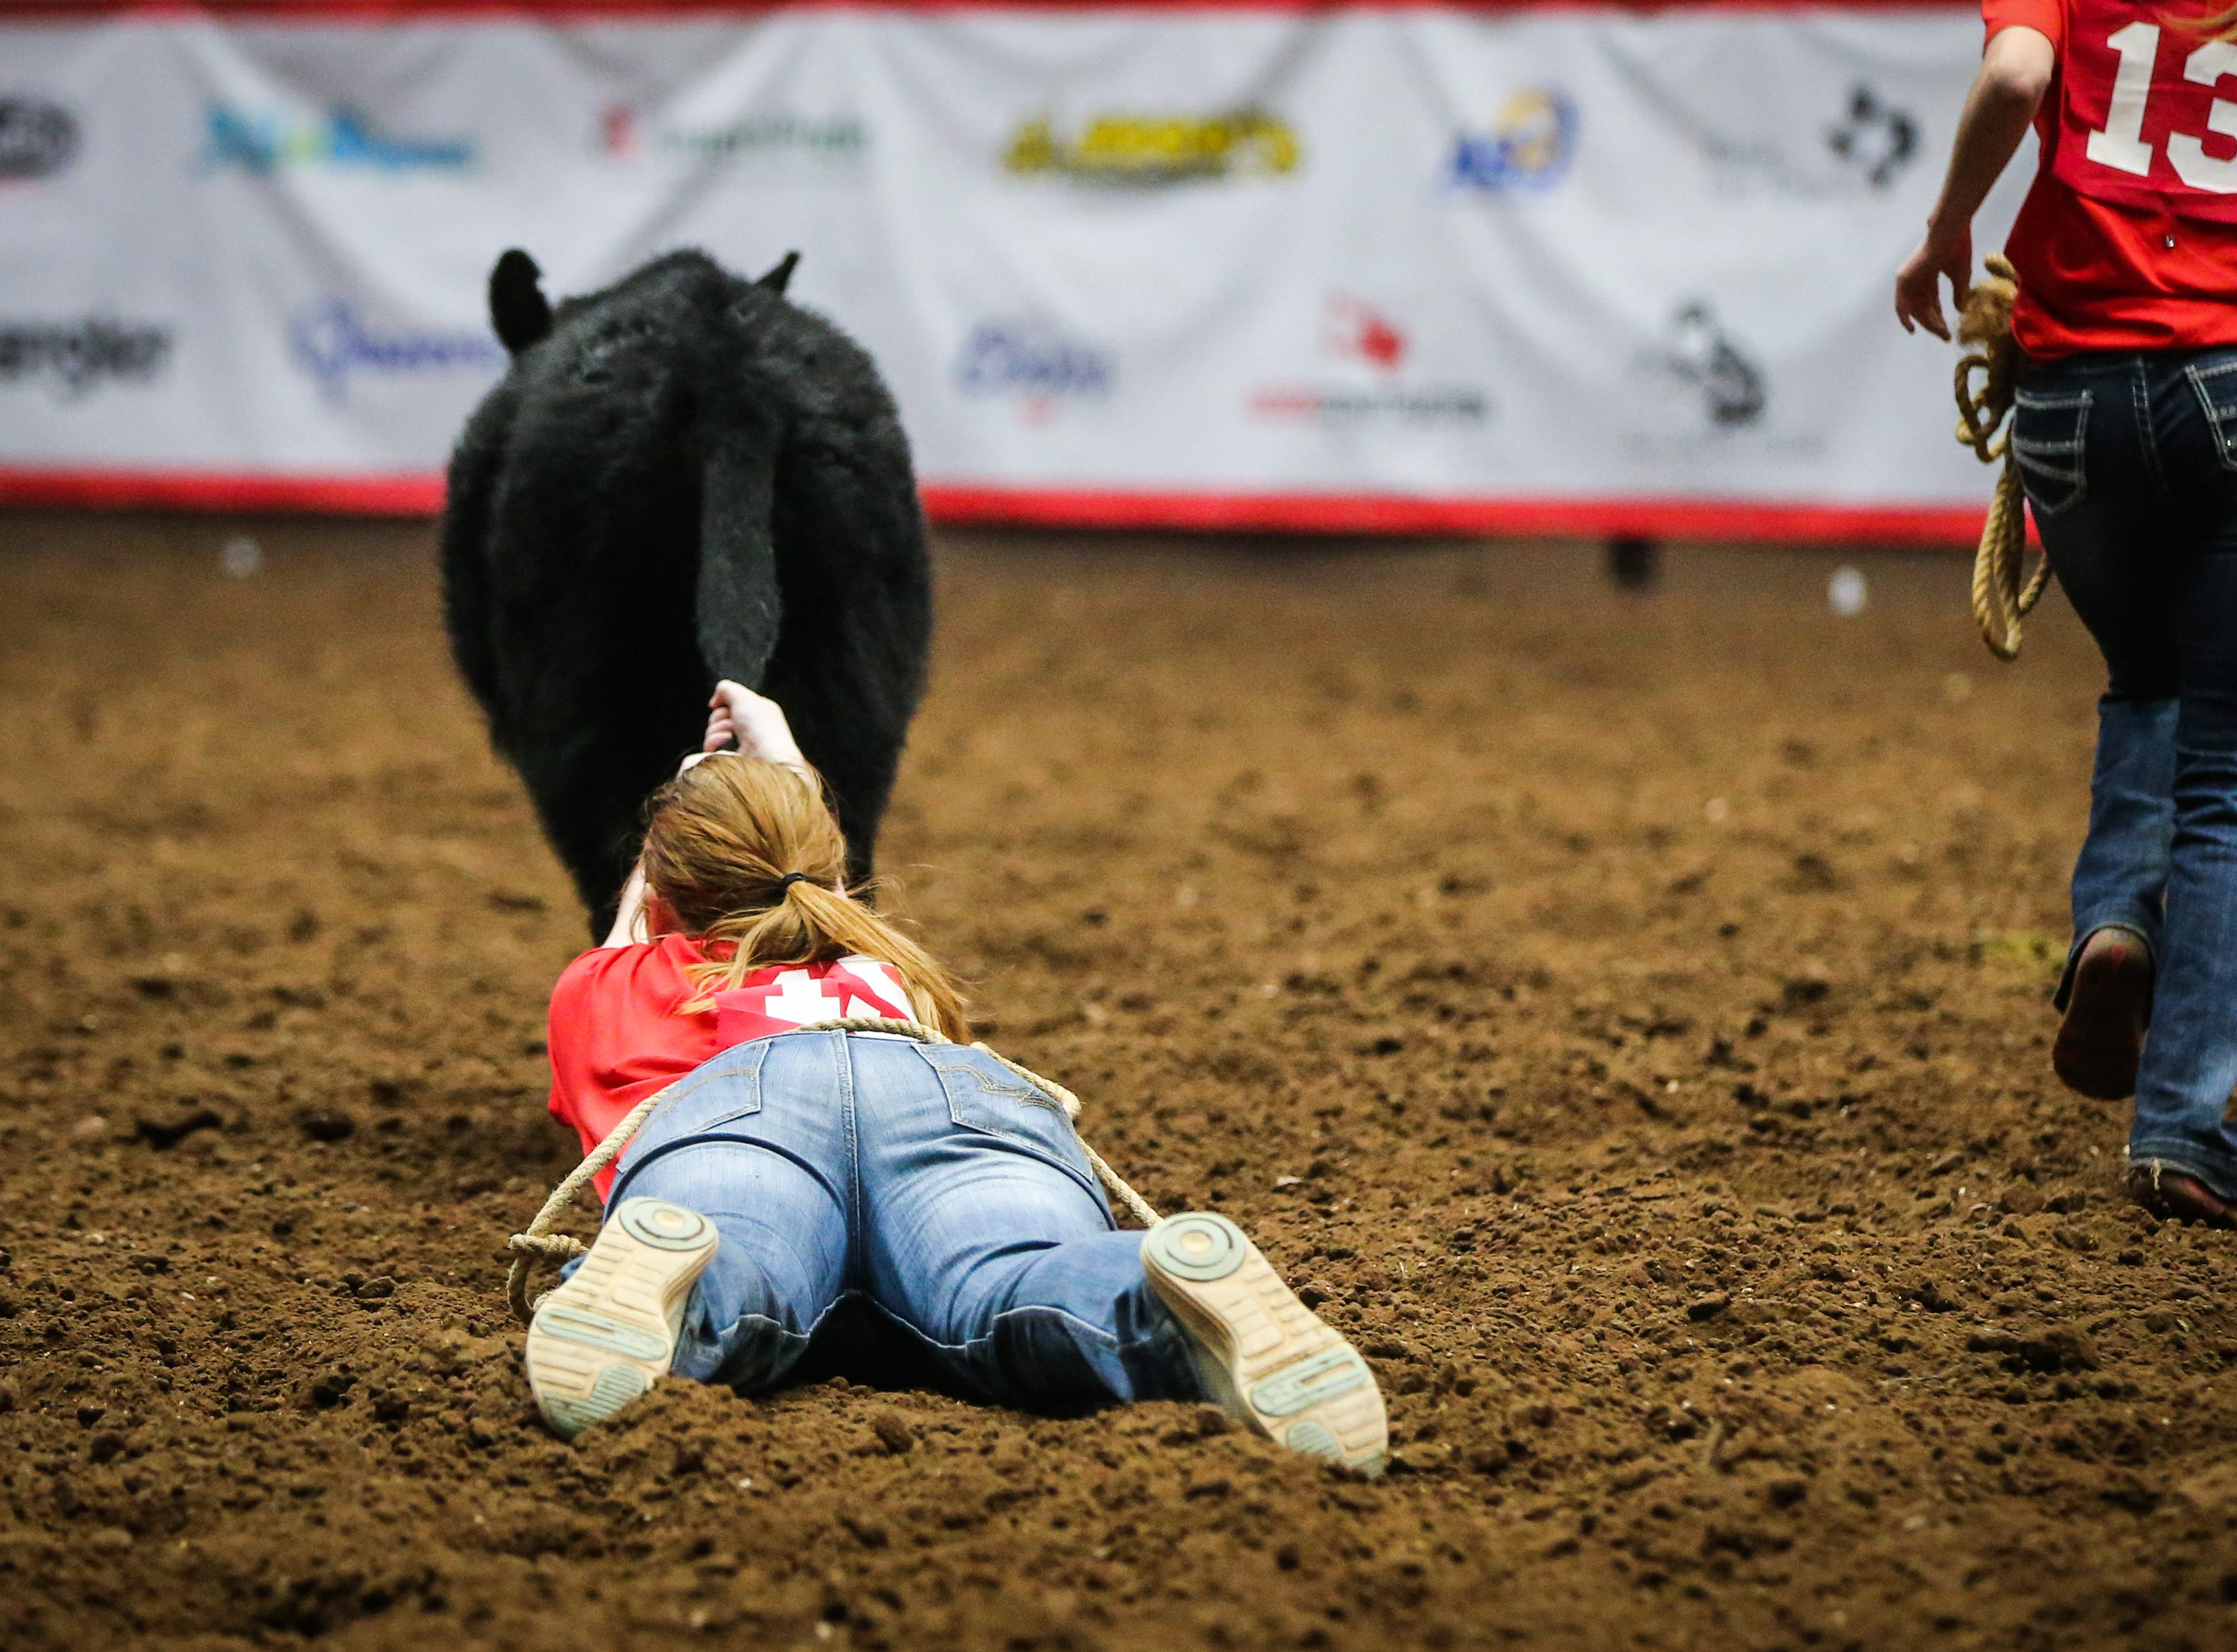 A girl is dragged behind a calf in the calf scramble during the San Angelo Stock Show & Rodeo matinee show Saturday, Feb. 9, 2019, at Foster Communications Coliseum.